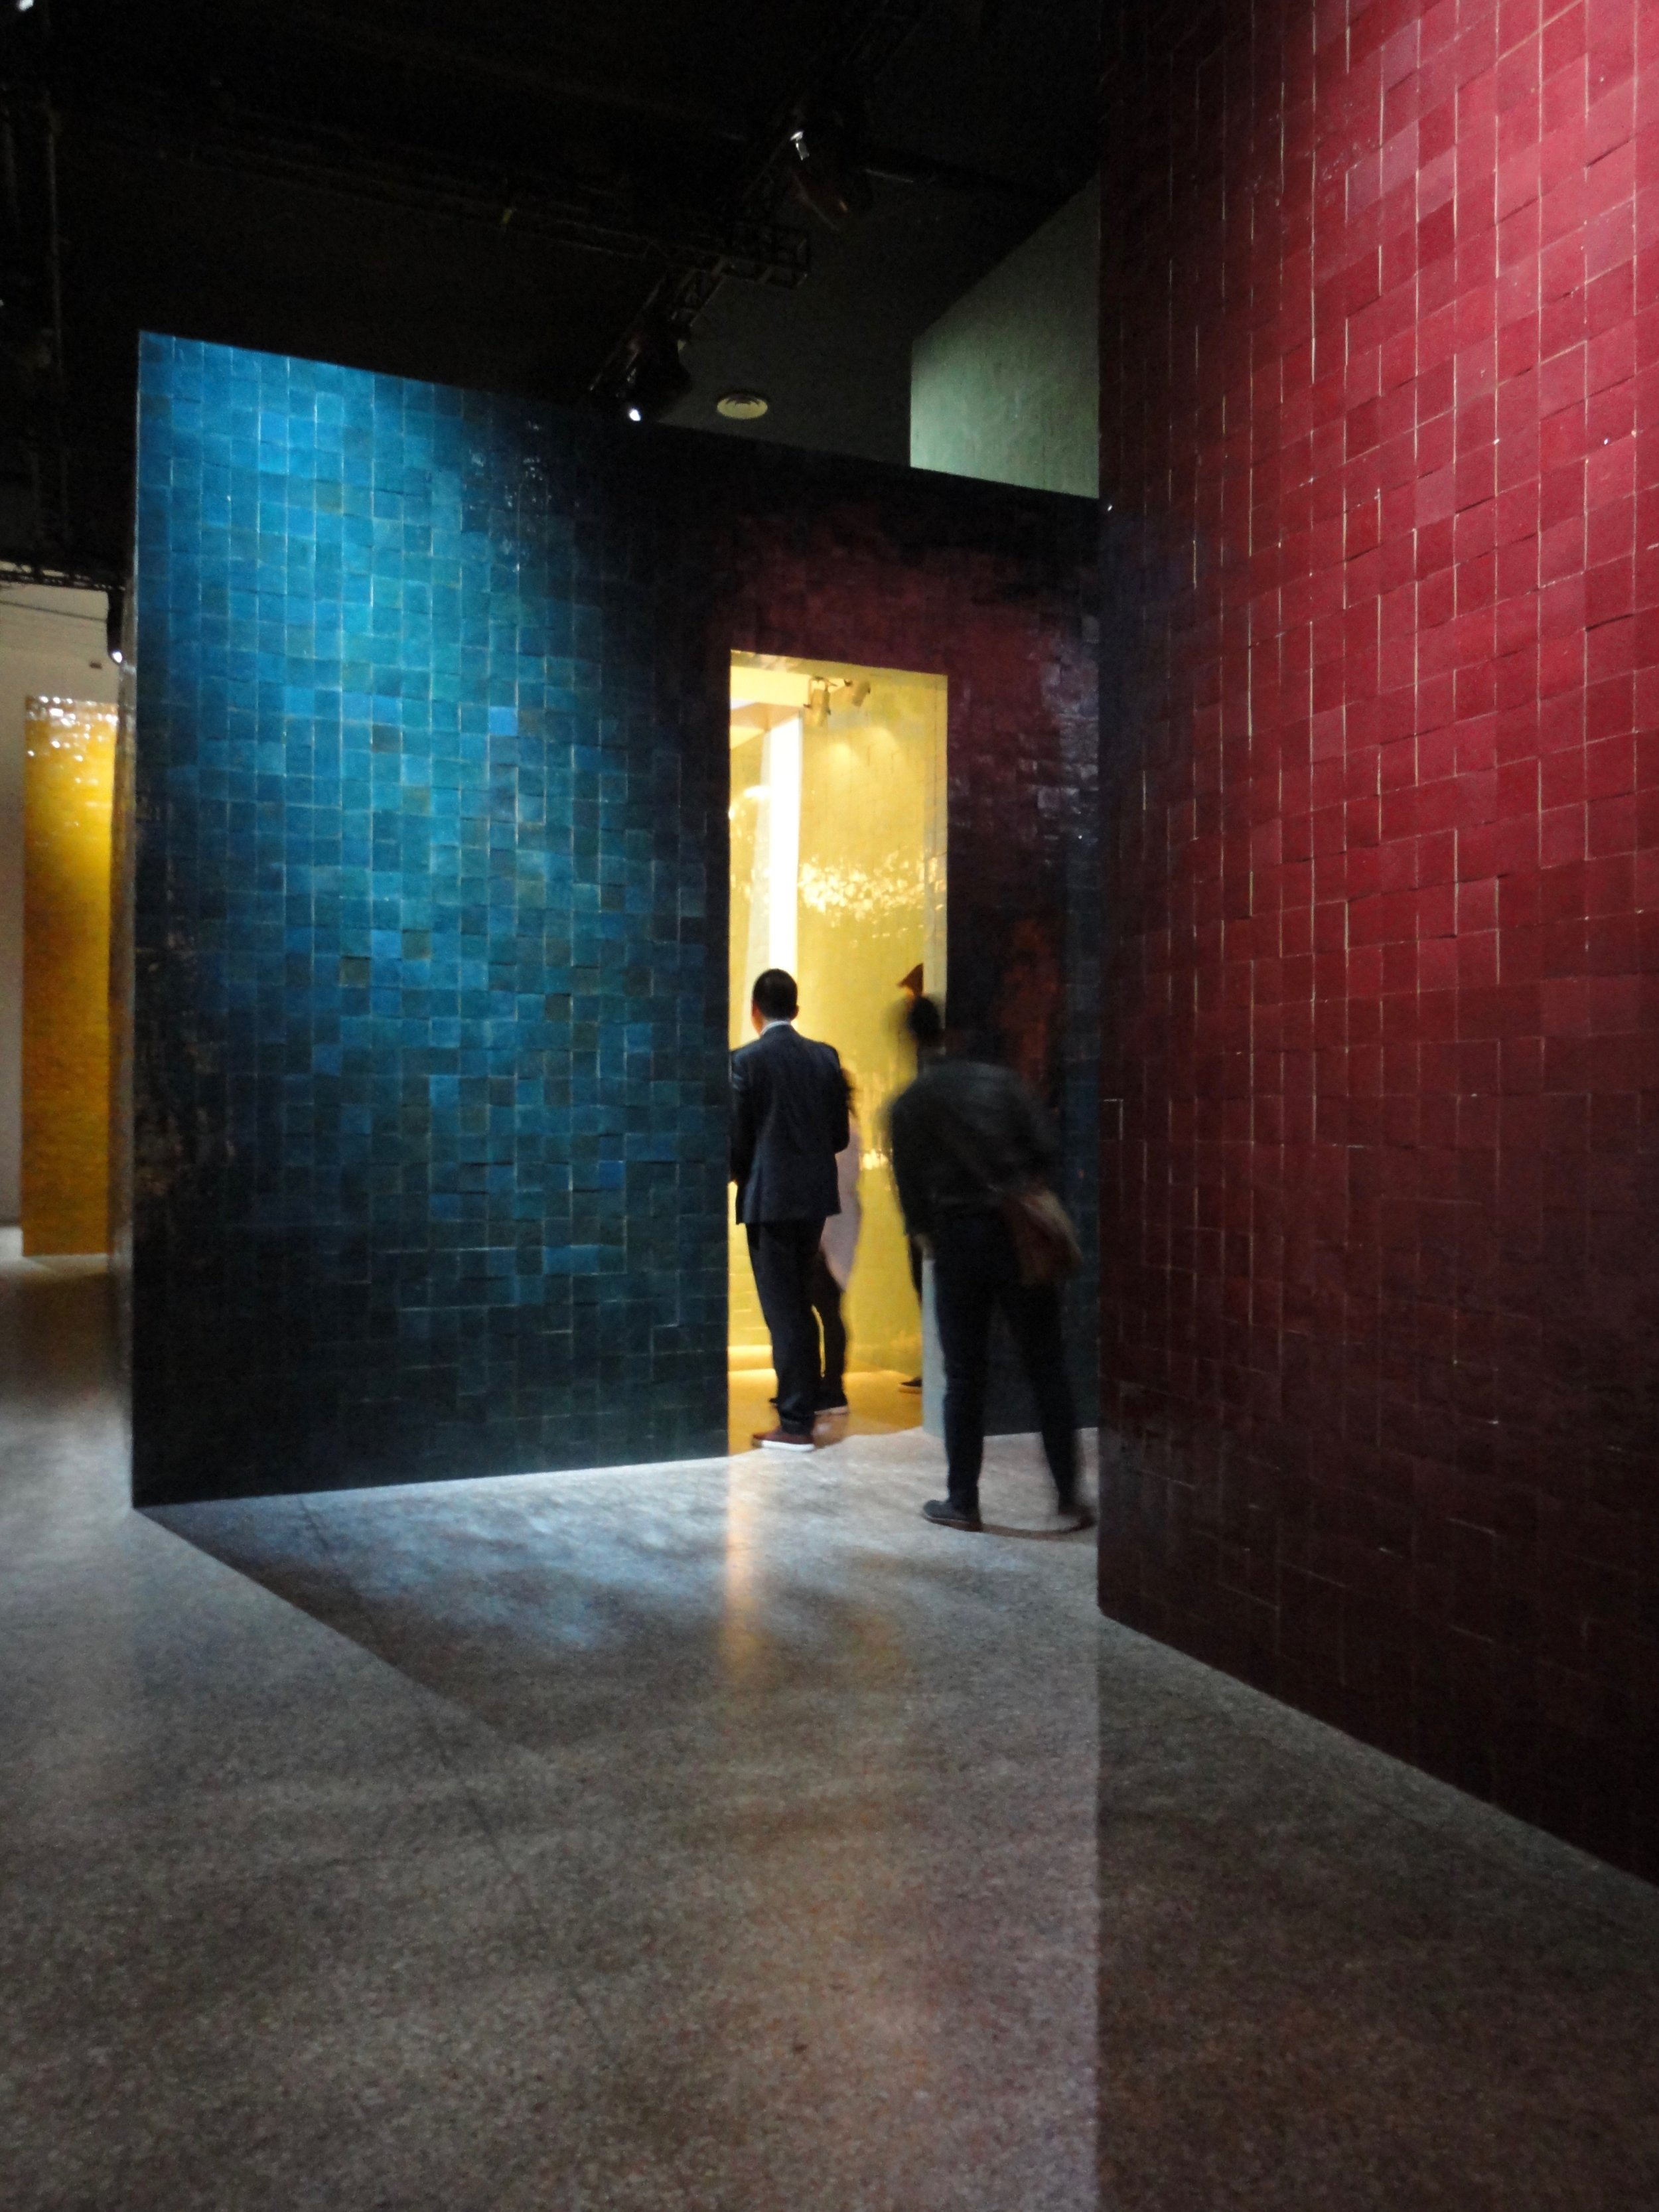 The glazed tiles at the Hermes display were gorgeously reflective